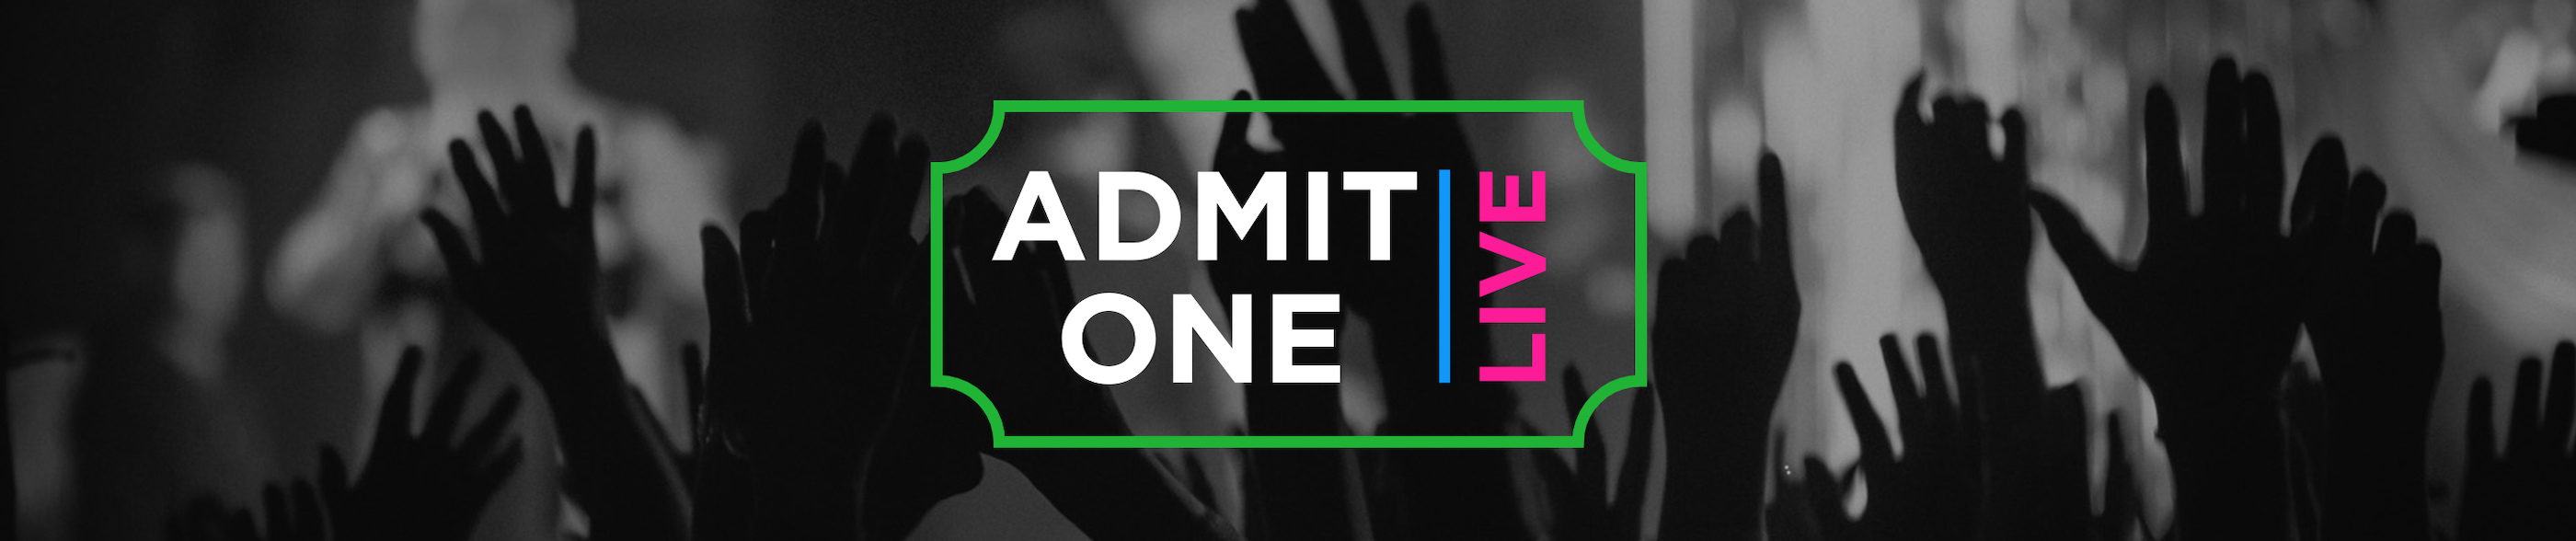 Tickets for MRG Live Presents: Passenger  in Vancouver from Admit One Live